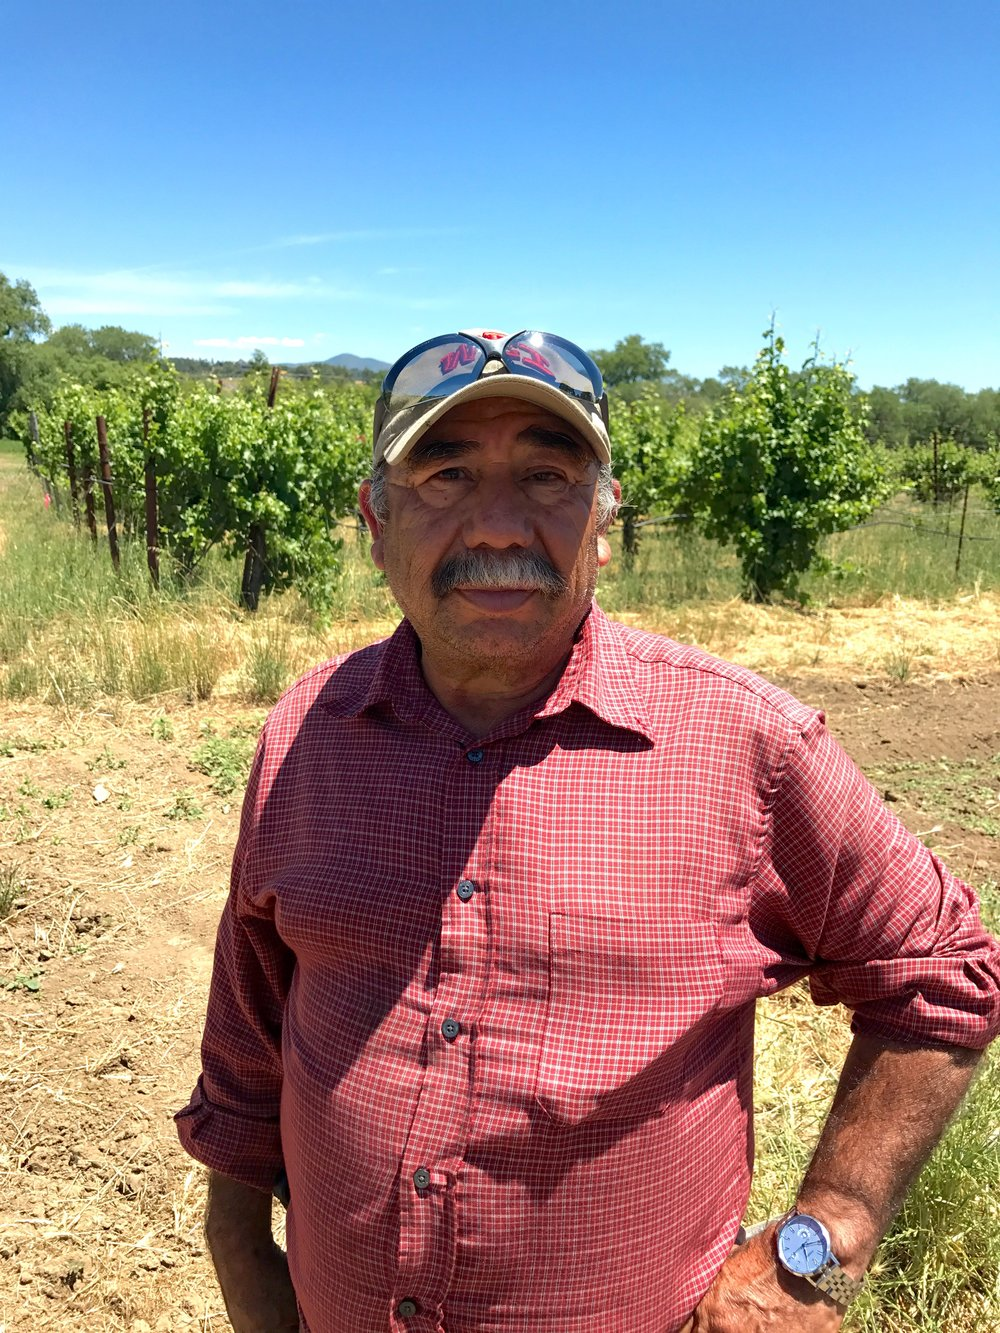 One of honoré's farmers, Jesus, from preston farm & winery, healdsburg, california